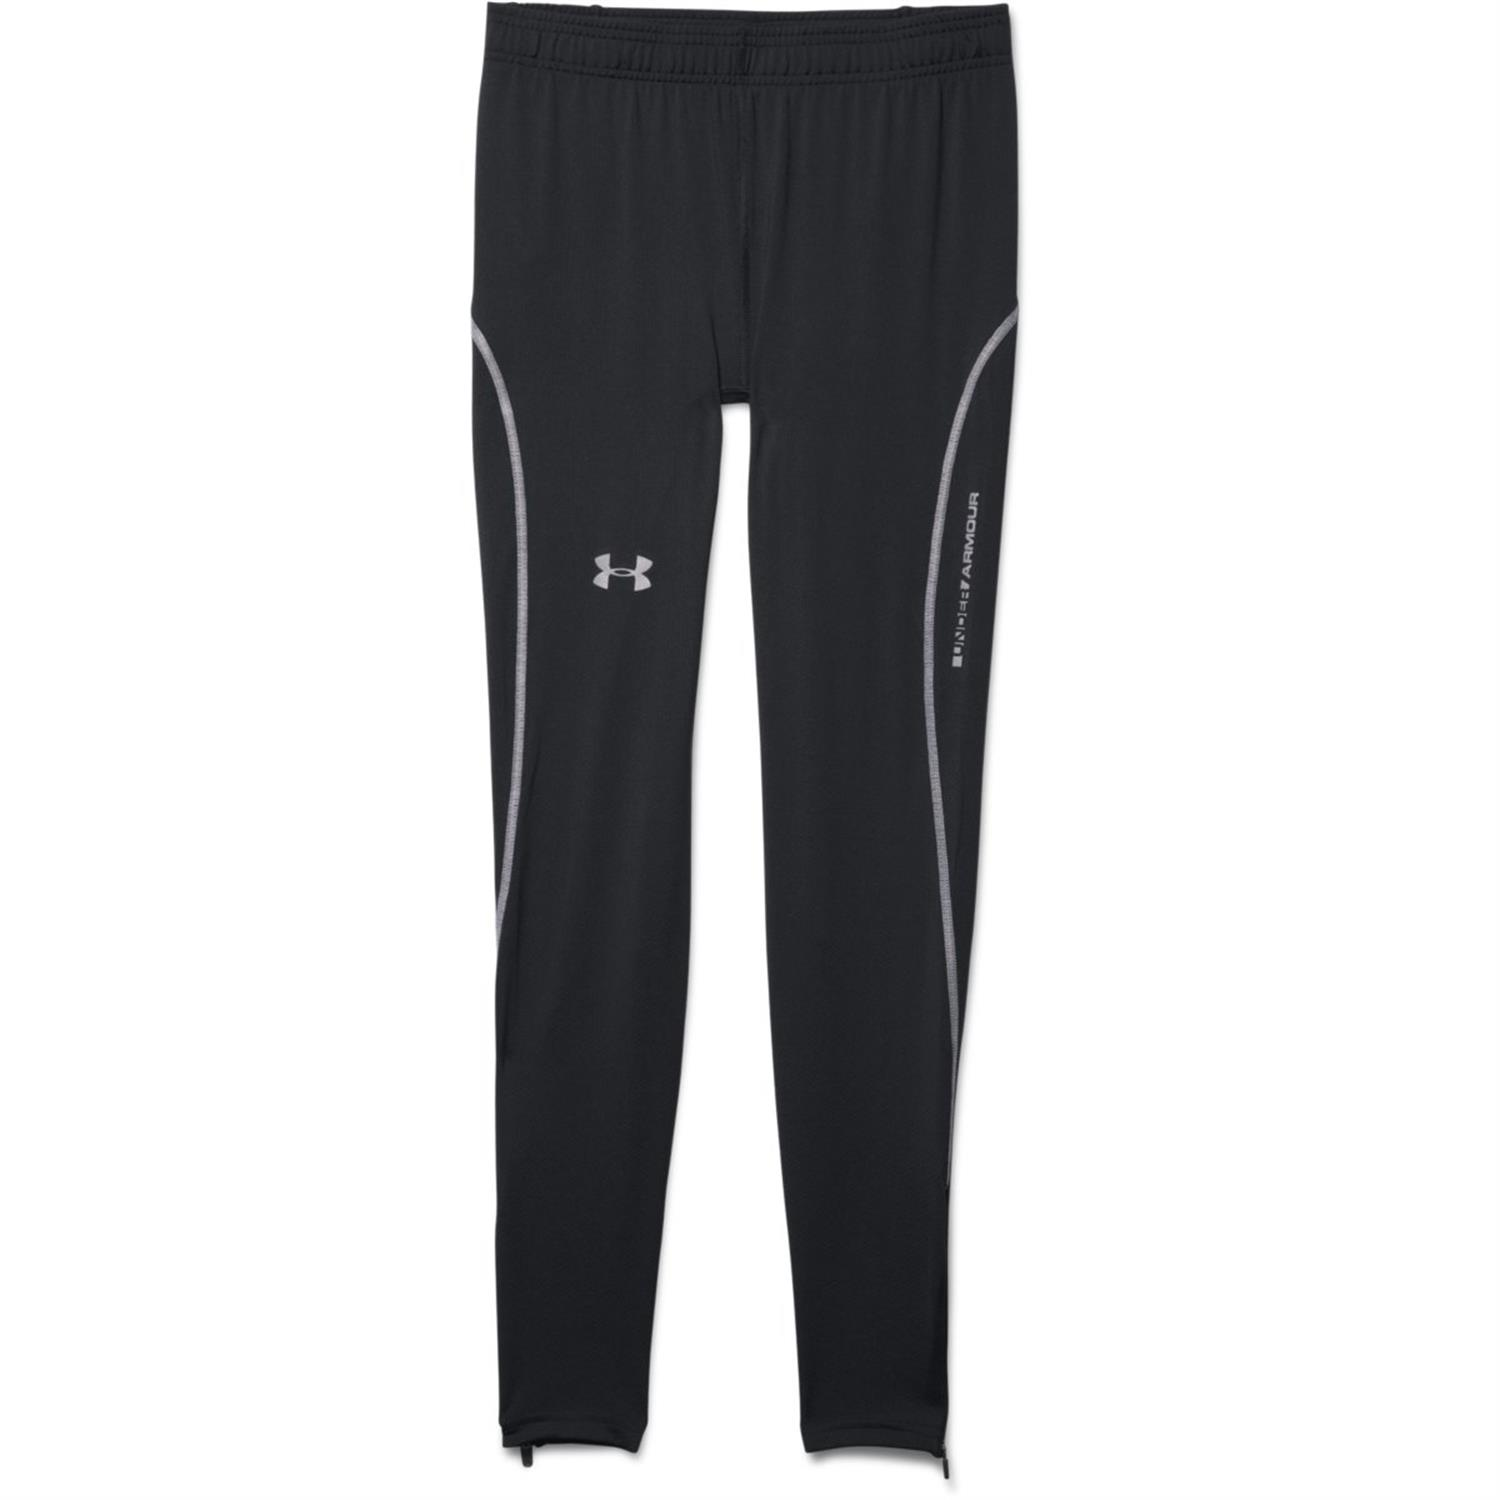 Under Armour Coolswitch Run Tight Nero Uomo